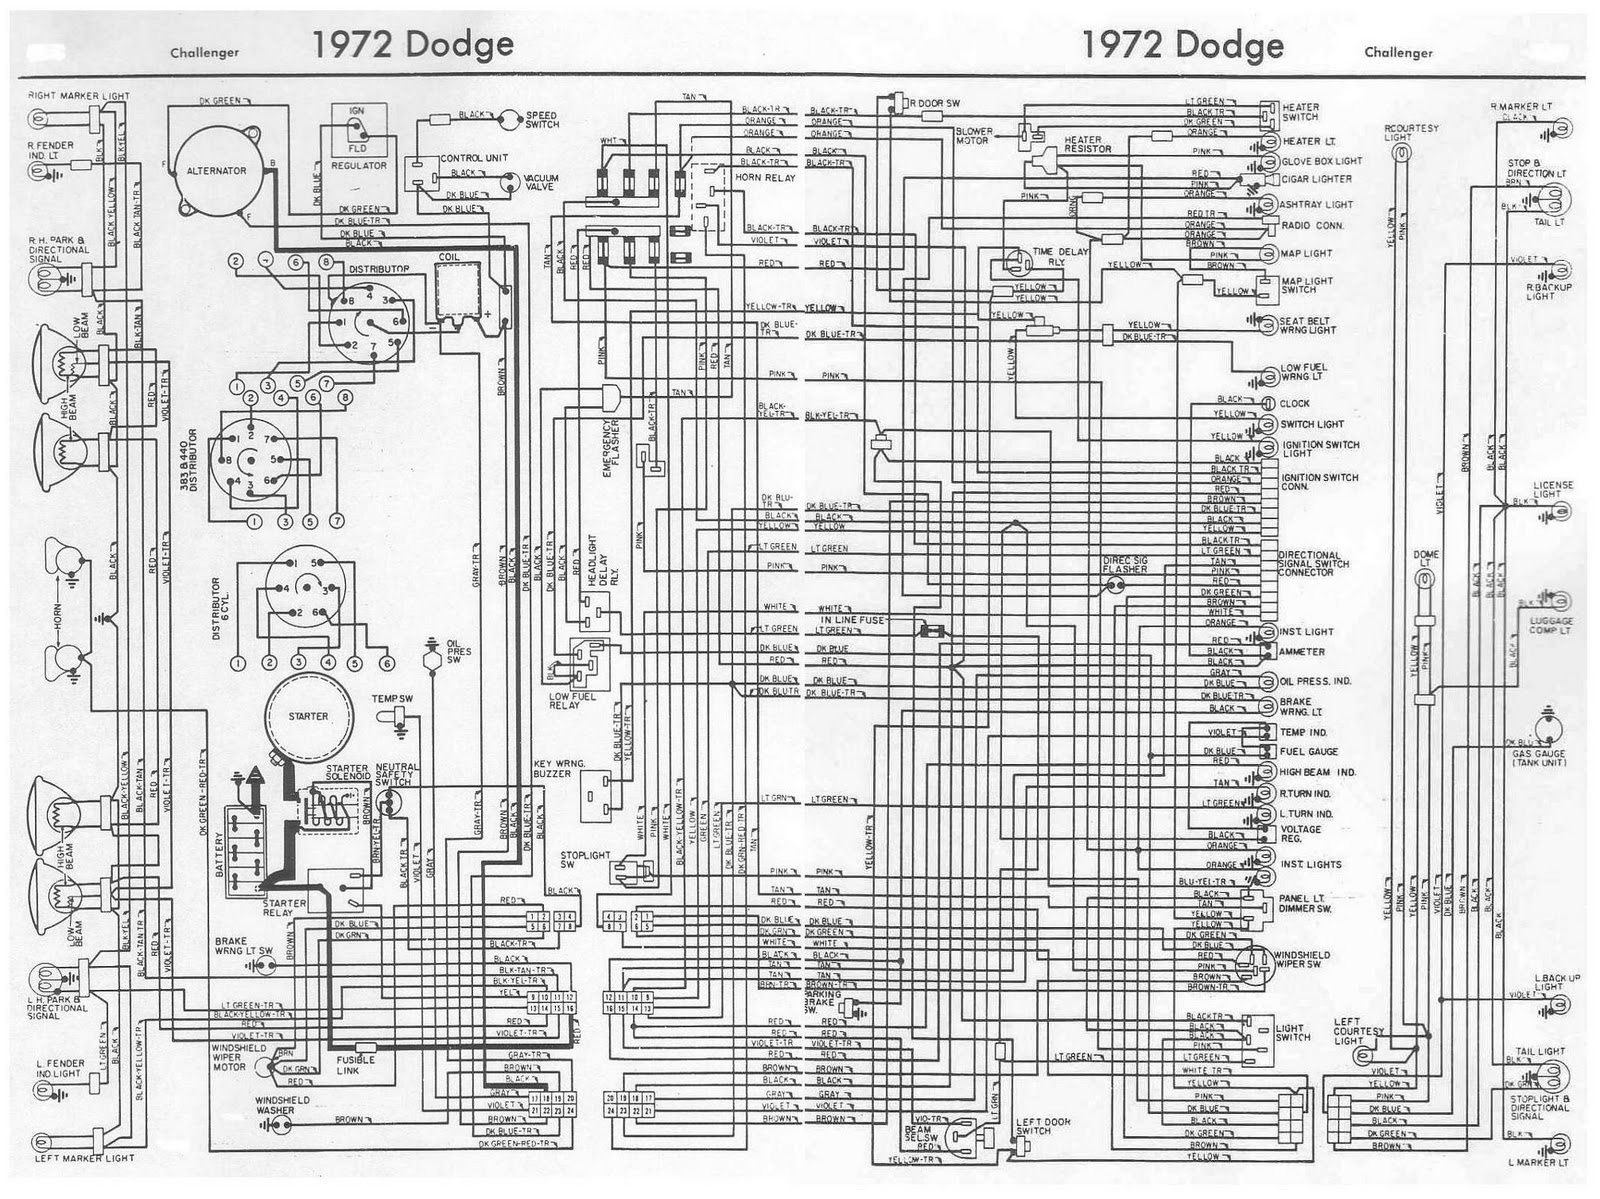 dodge challenger radio wiring enthusiast wiring diagrams u2022 rh bwpartnersautos com 2013 dodge challenger radio wiring diagram 2009 dodge challenger radio wiring diagram